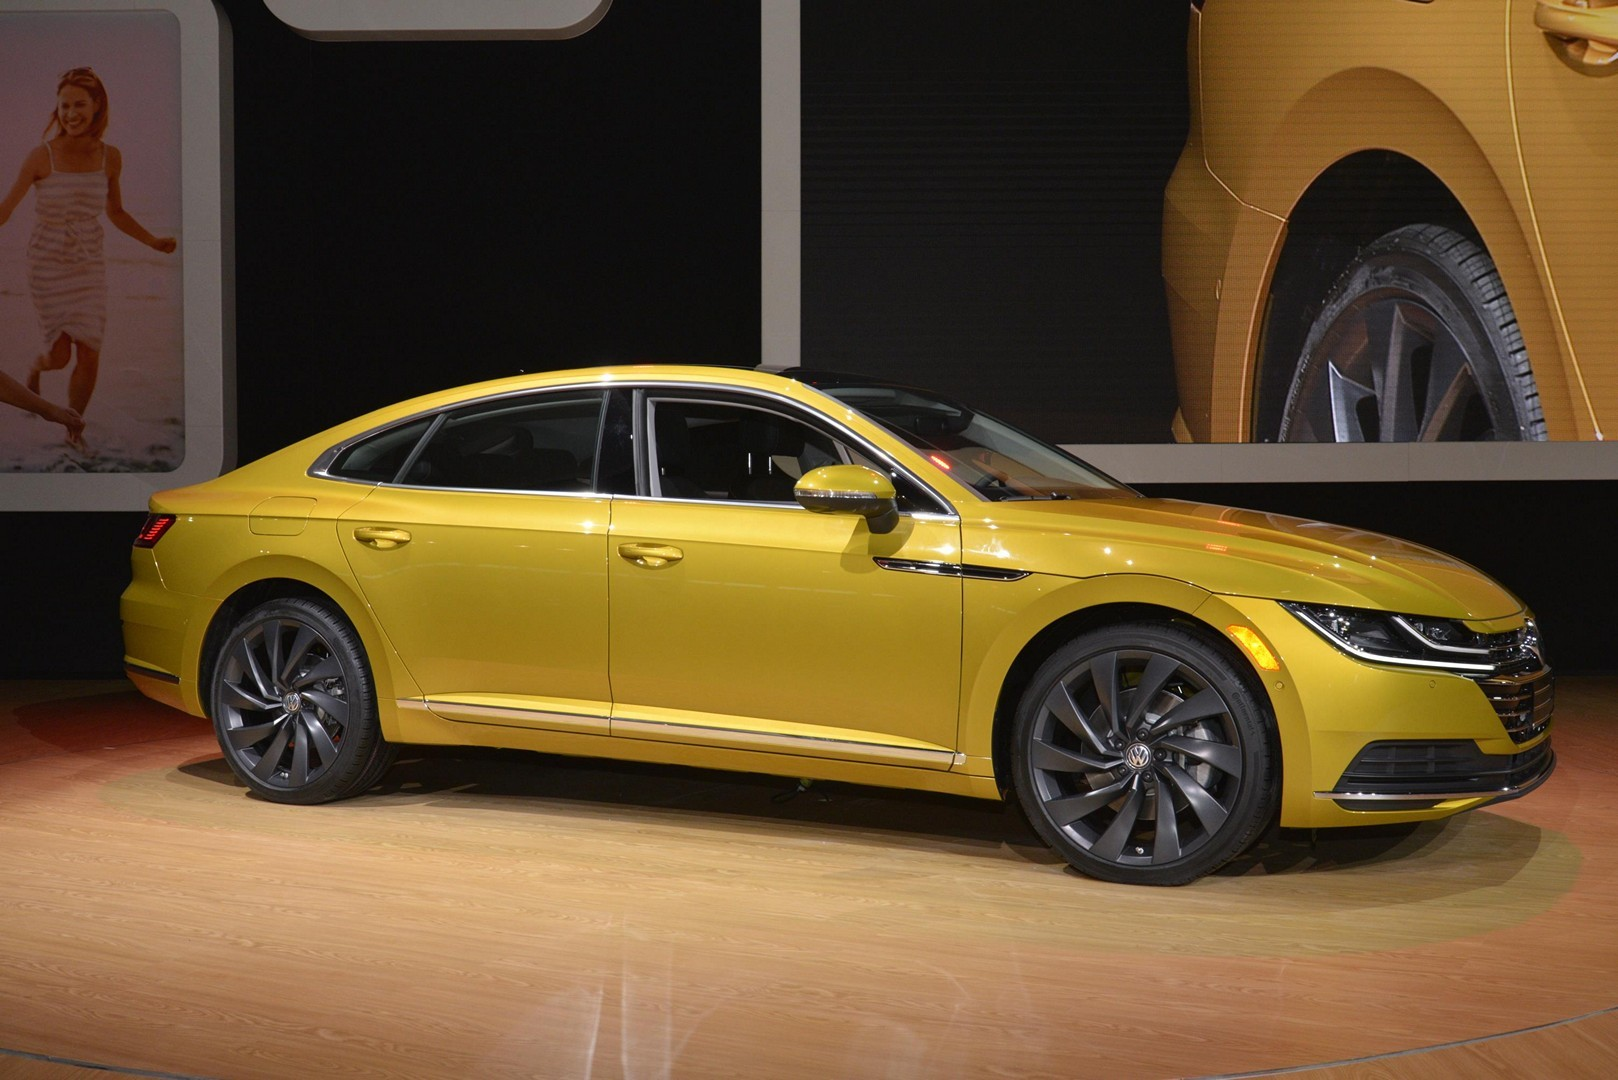 volkswagen built an arteon v6 prototype is considering a shooting brake autoevolution. Black Bedroom Furniture Sets. Home Design Ideas